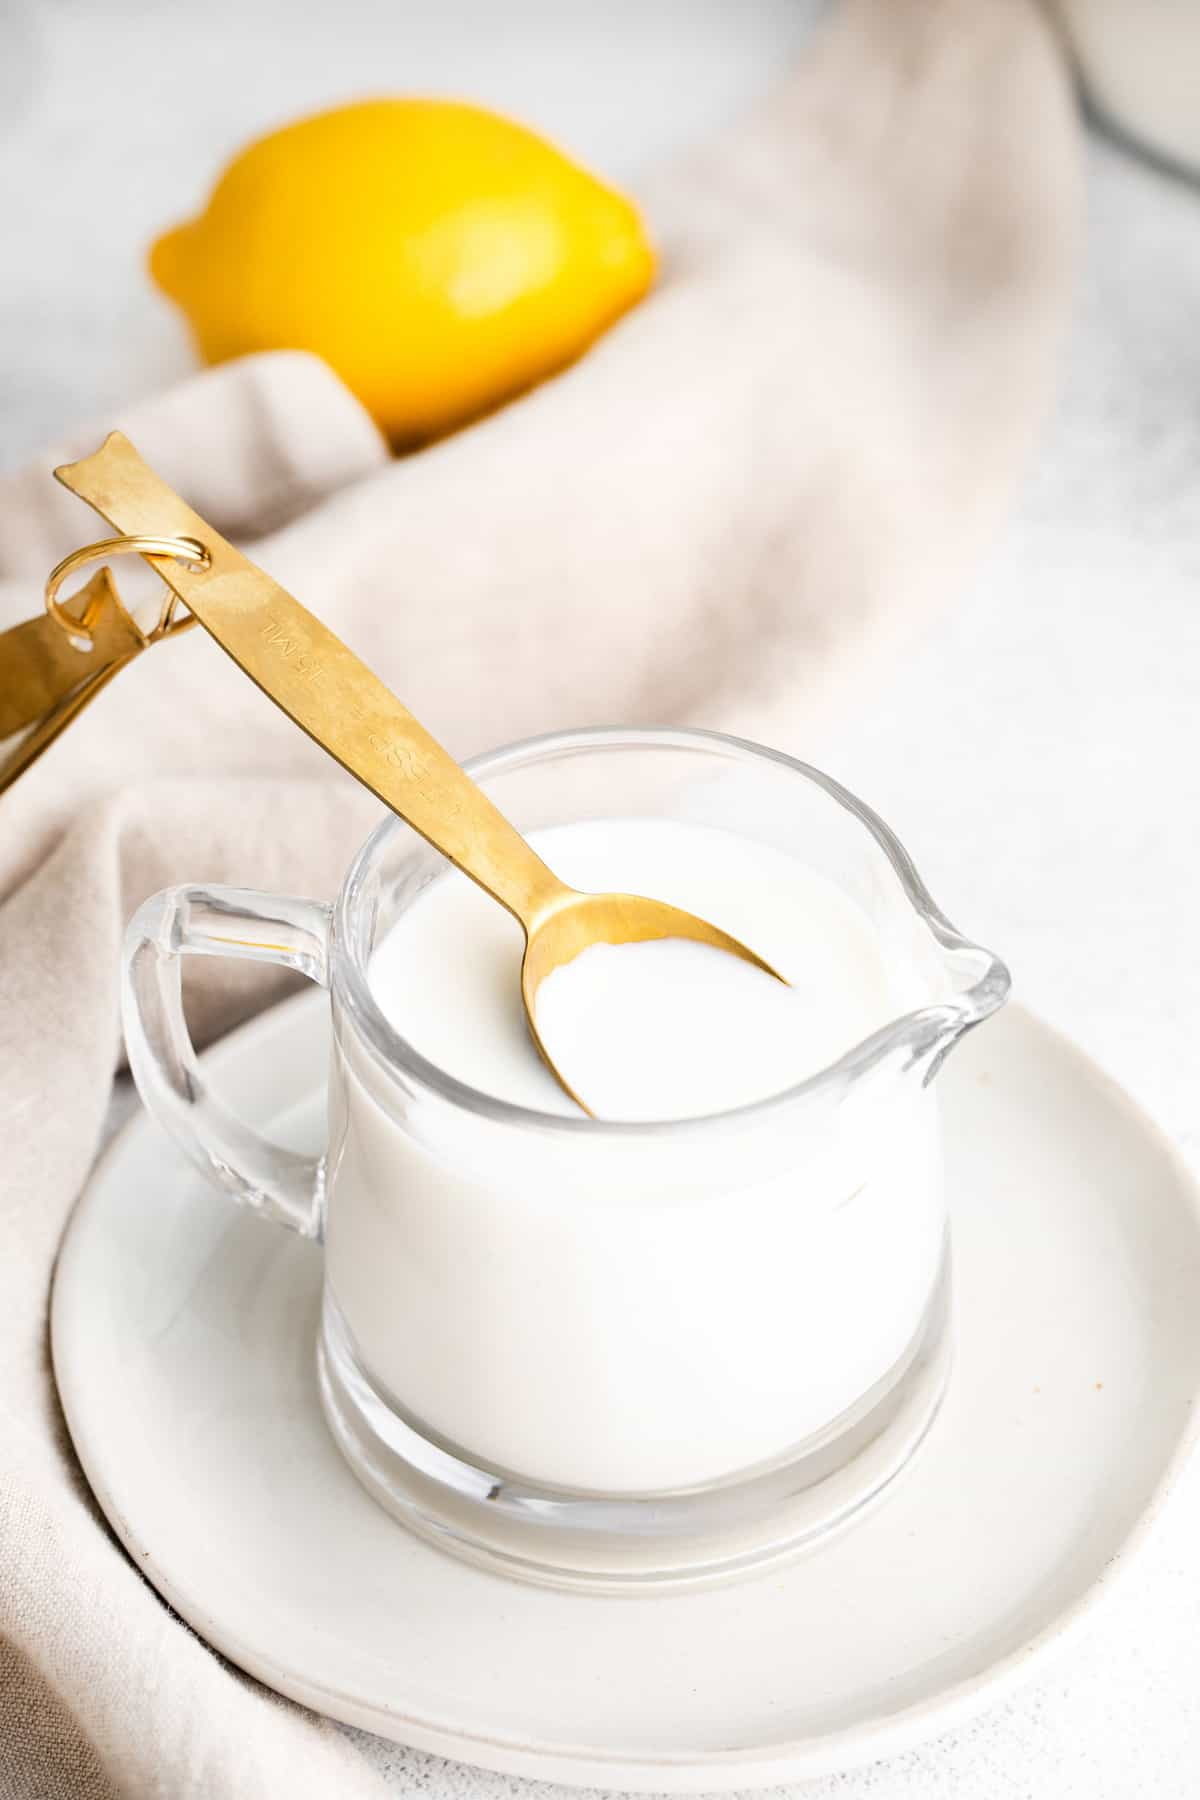 Spoon in small pitcher of buttermilk.